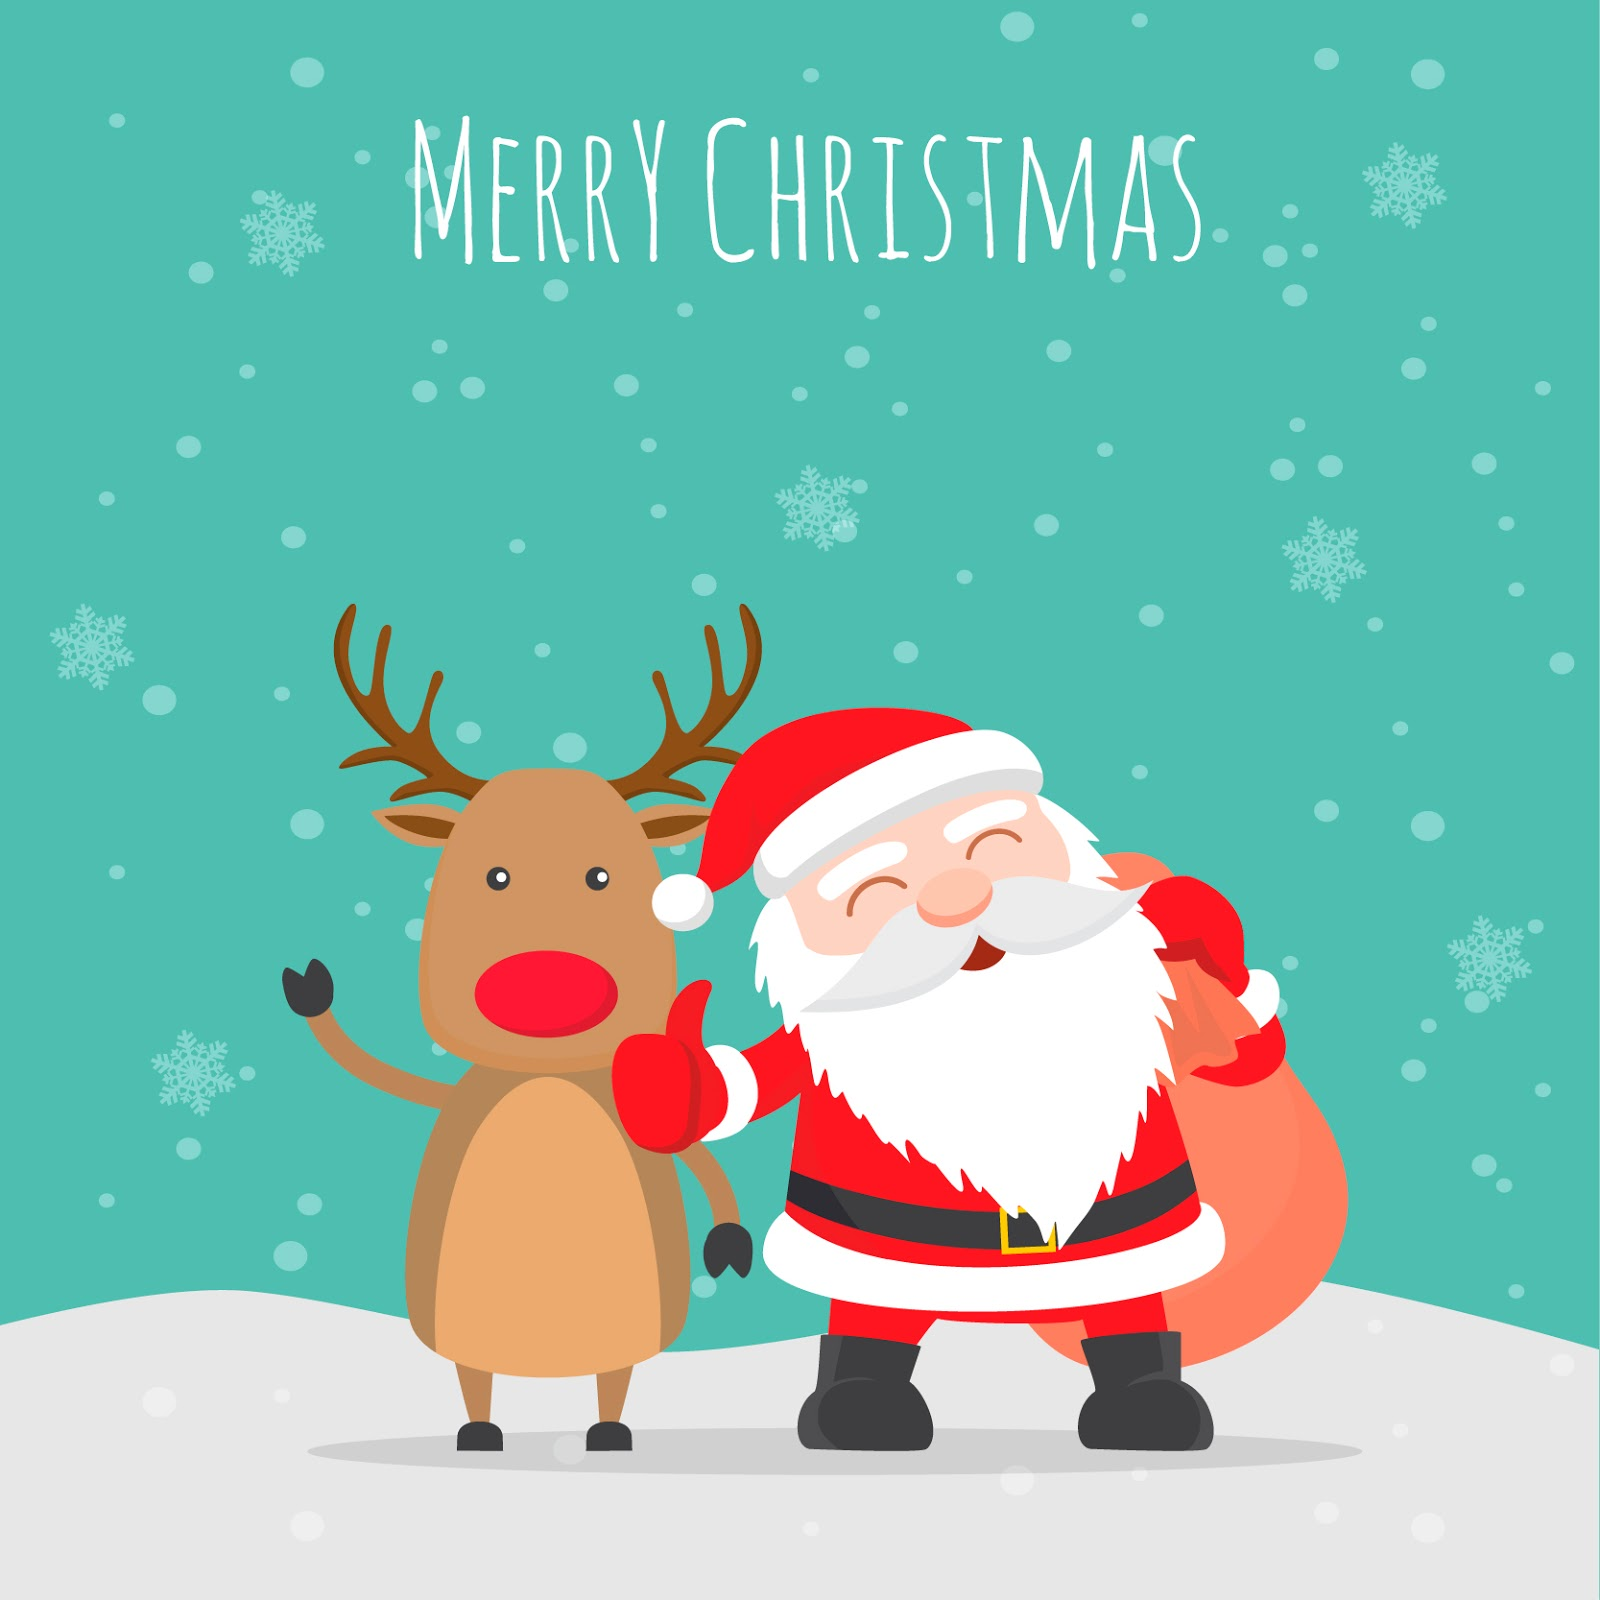 Merry Christmas 2017 Images Pictures